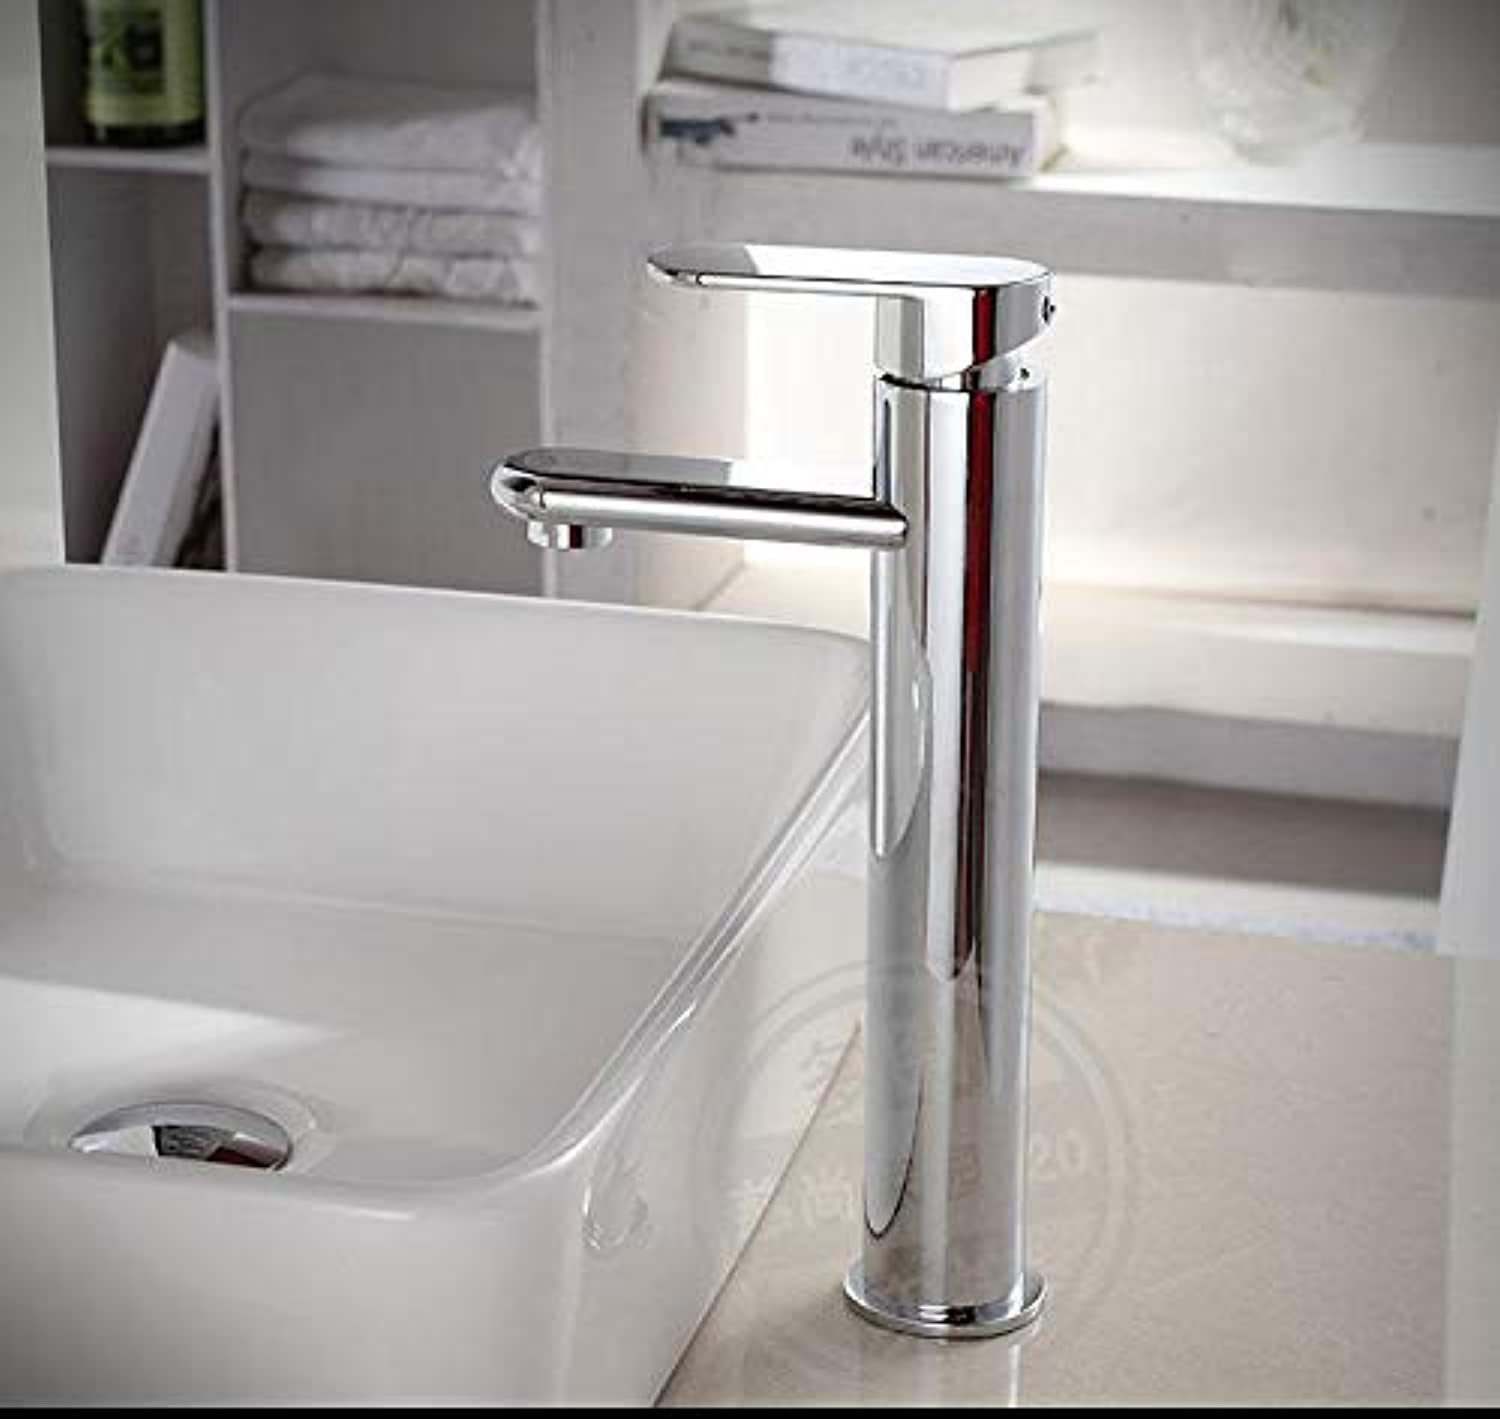 PajCzh Sink Bathroom Sink Taps Copper Faucet Hot And Cold Single Hole Basin Basin Faucet Above Counter Basin Wash Basin Sink Faucet, A, 1